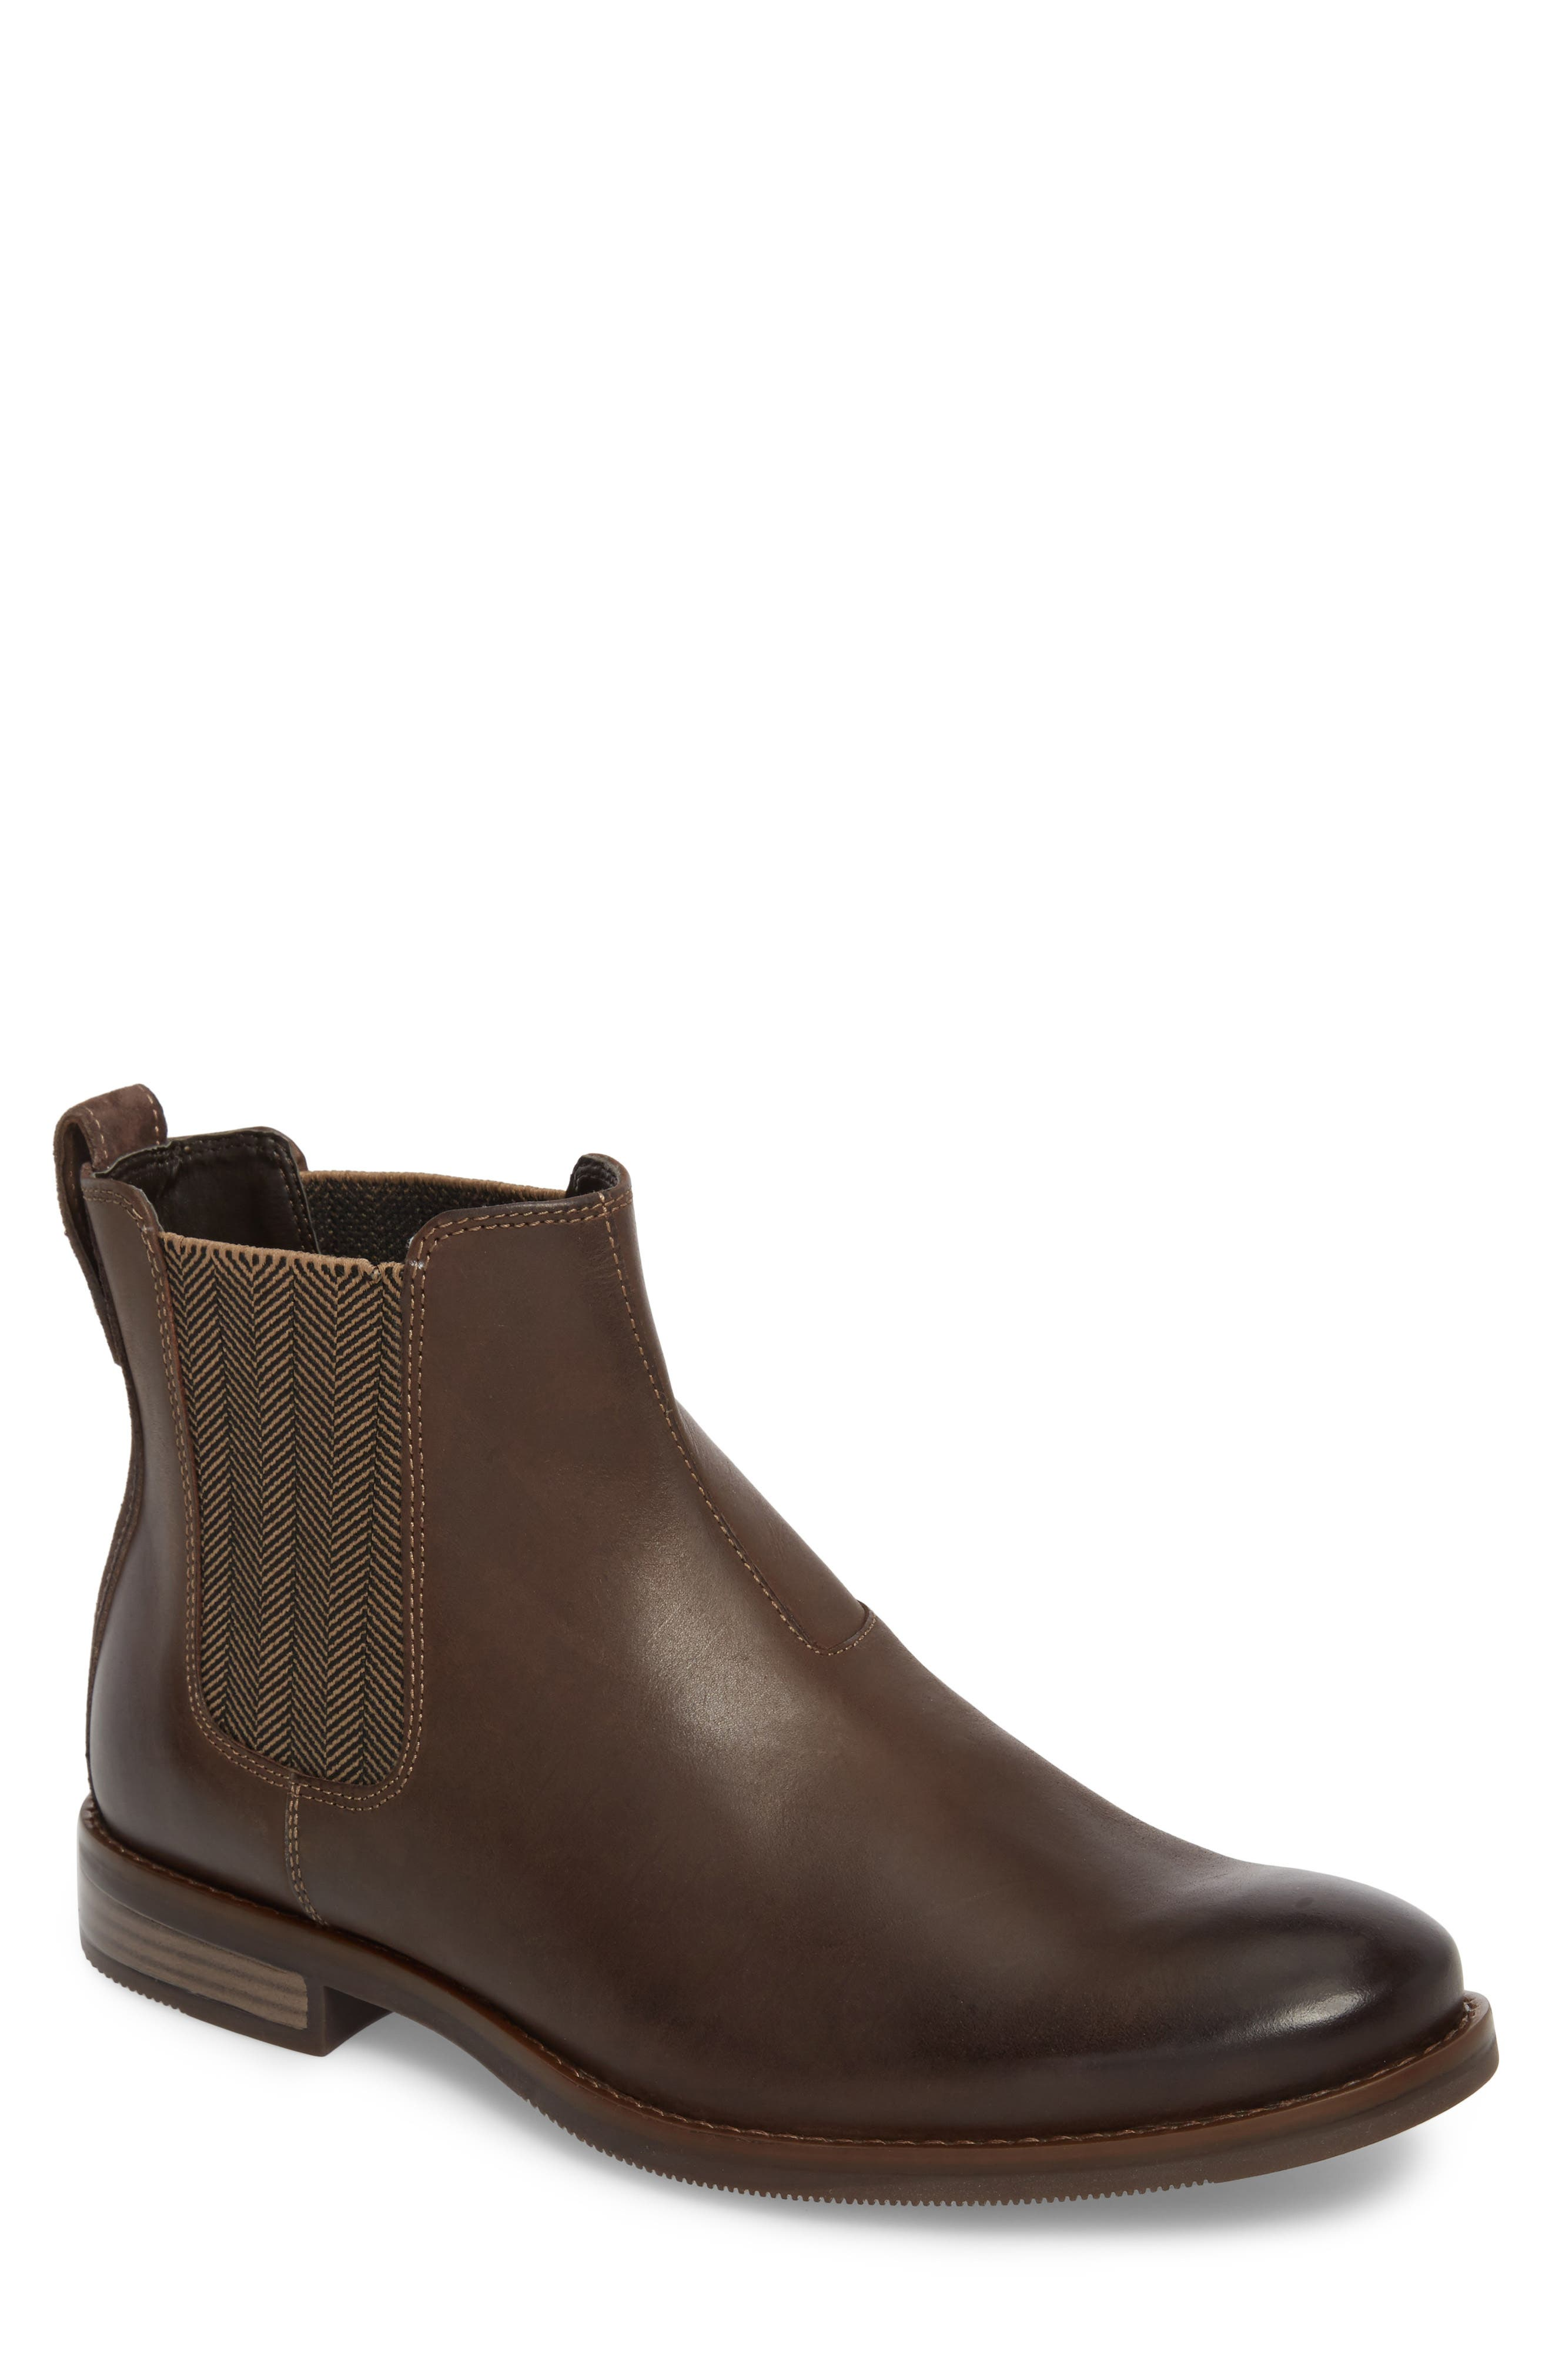 Wynstin Chelsea Boot,                             Main thumbnail 1, color,